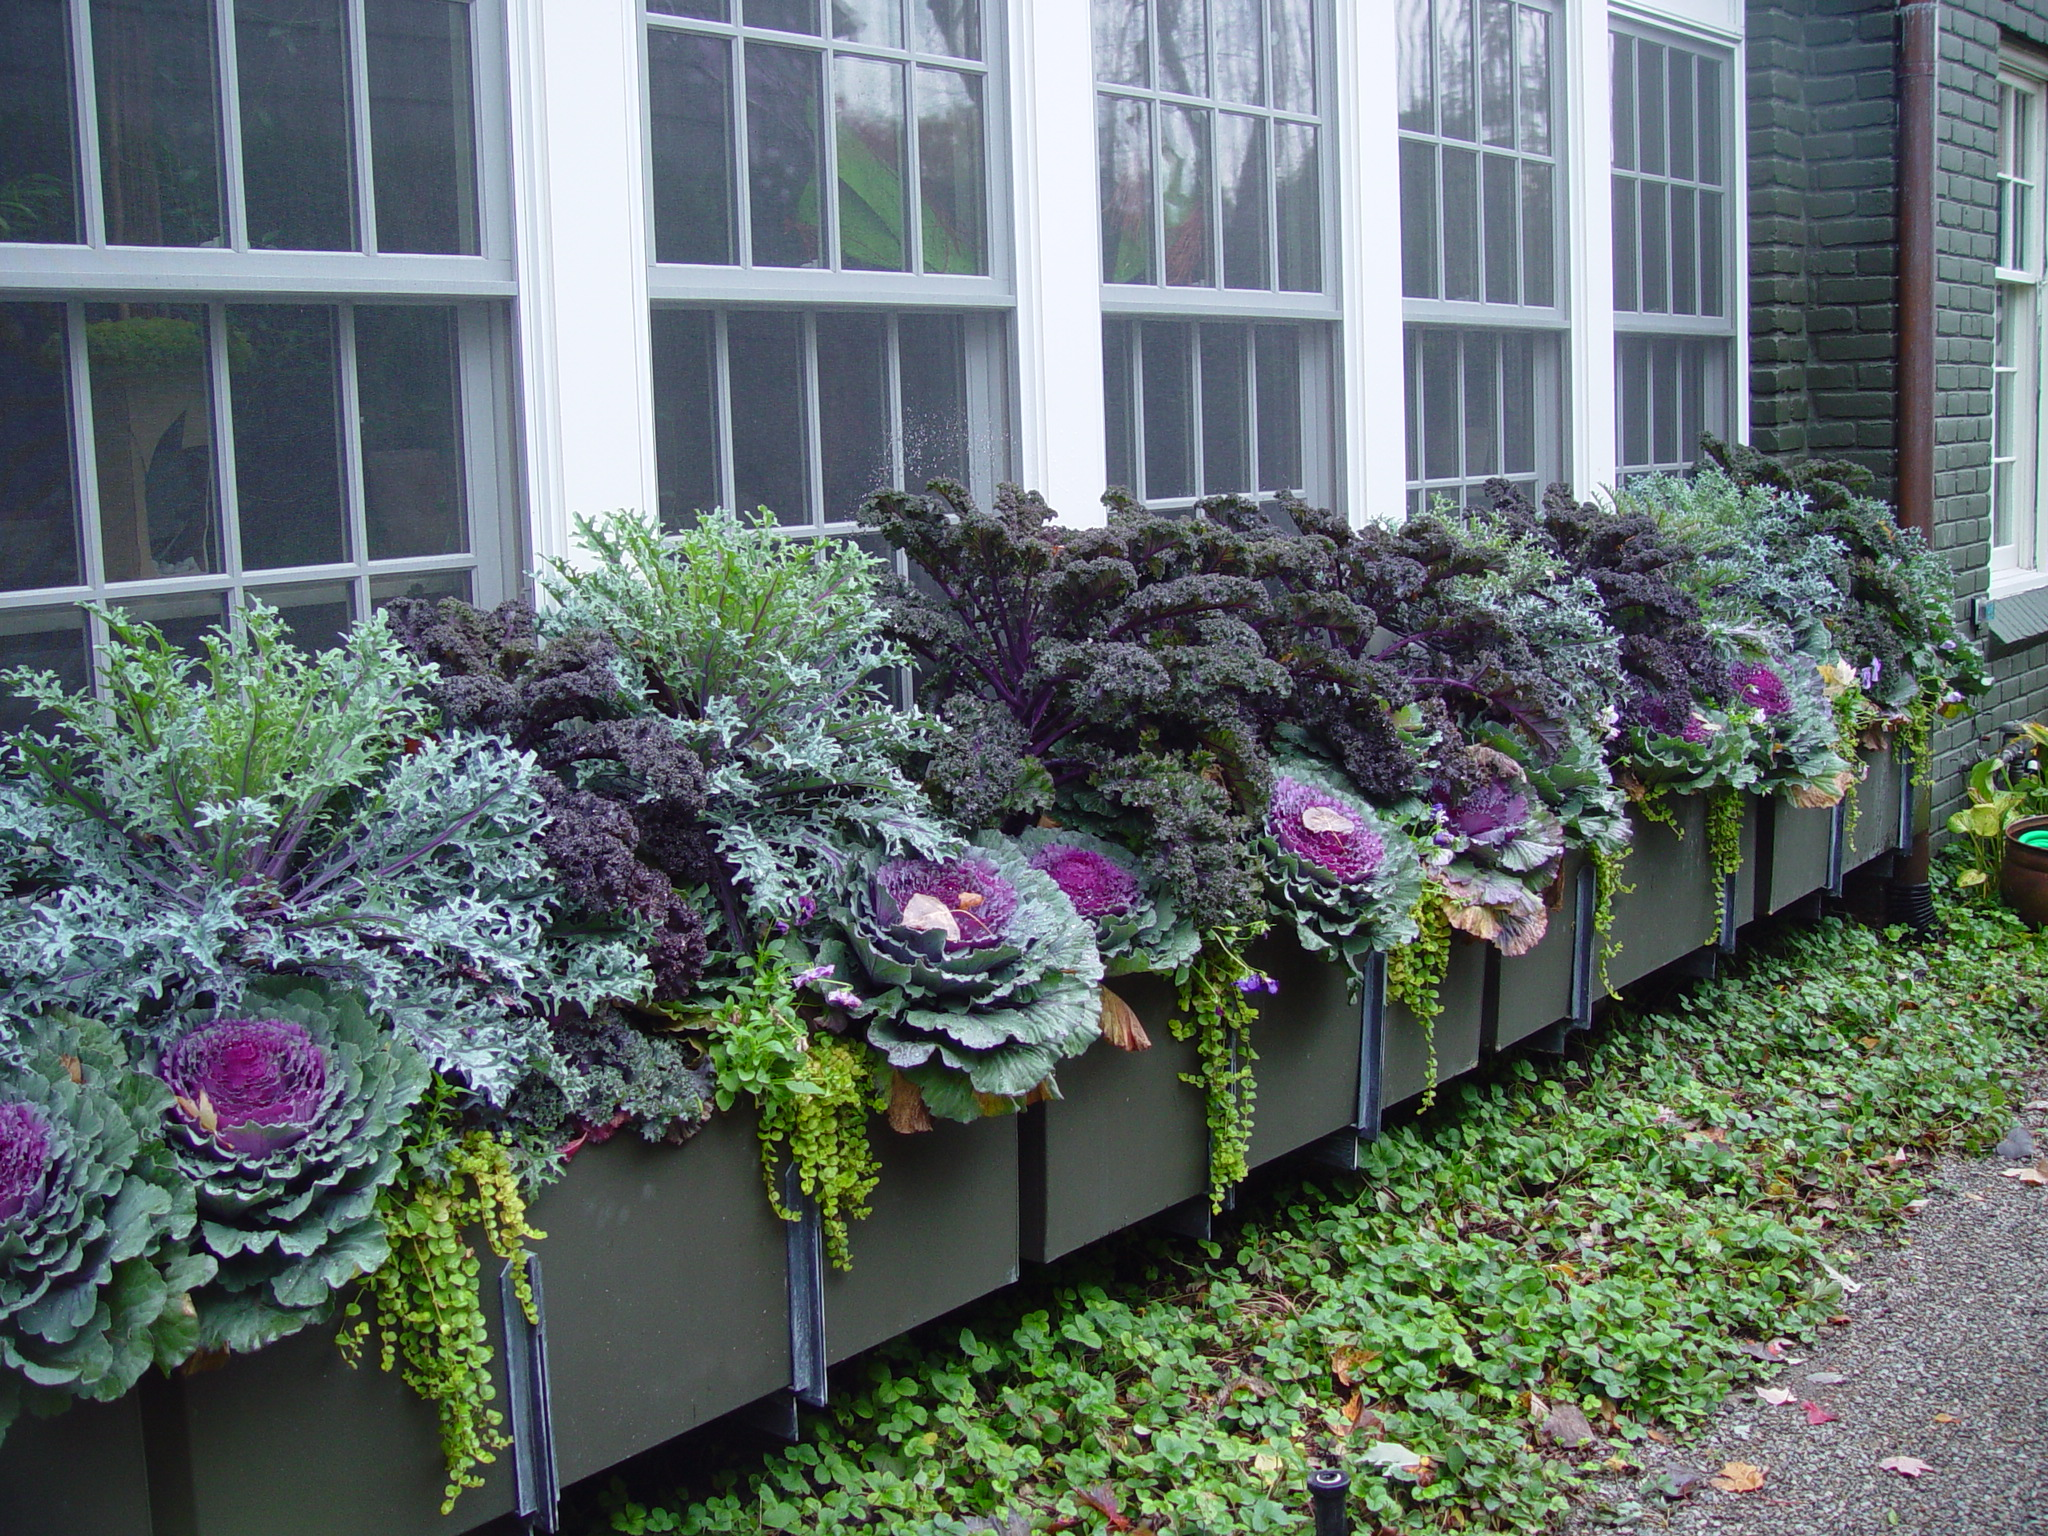 Garden boxes with edible and ornamental kale